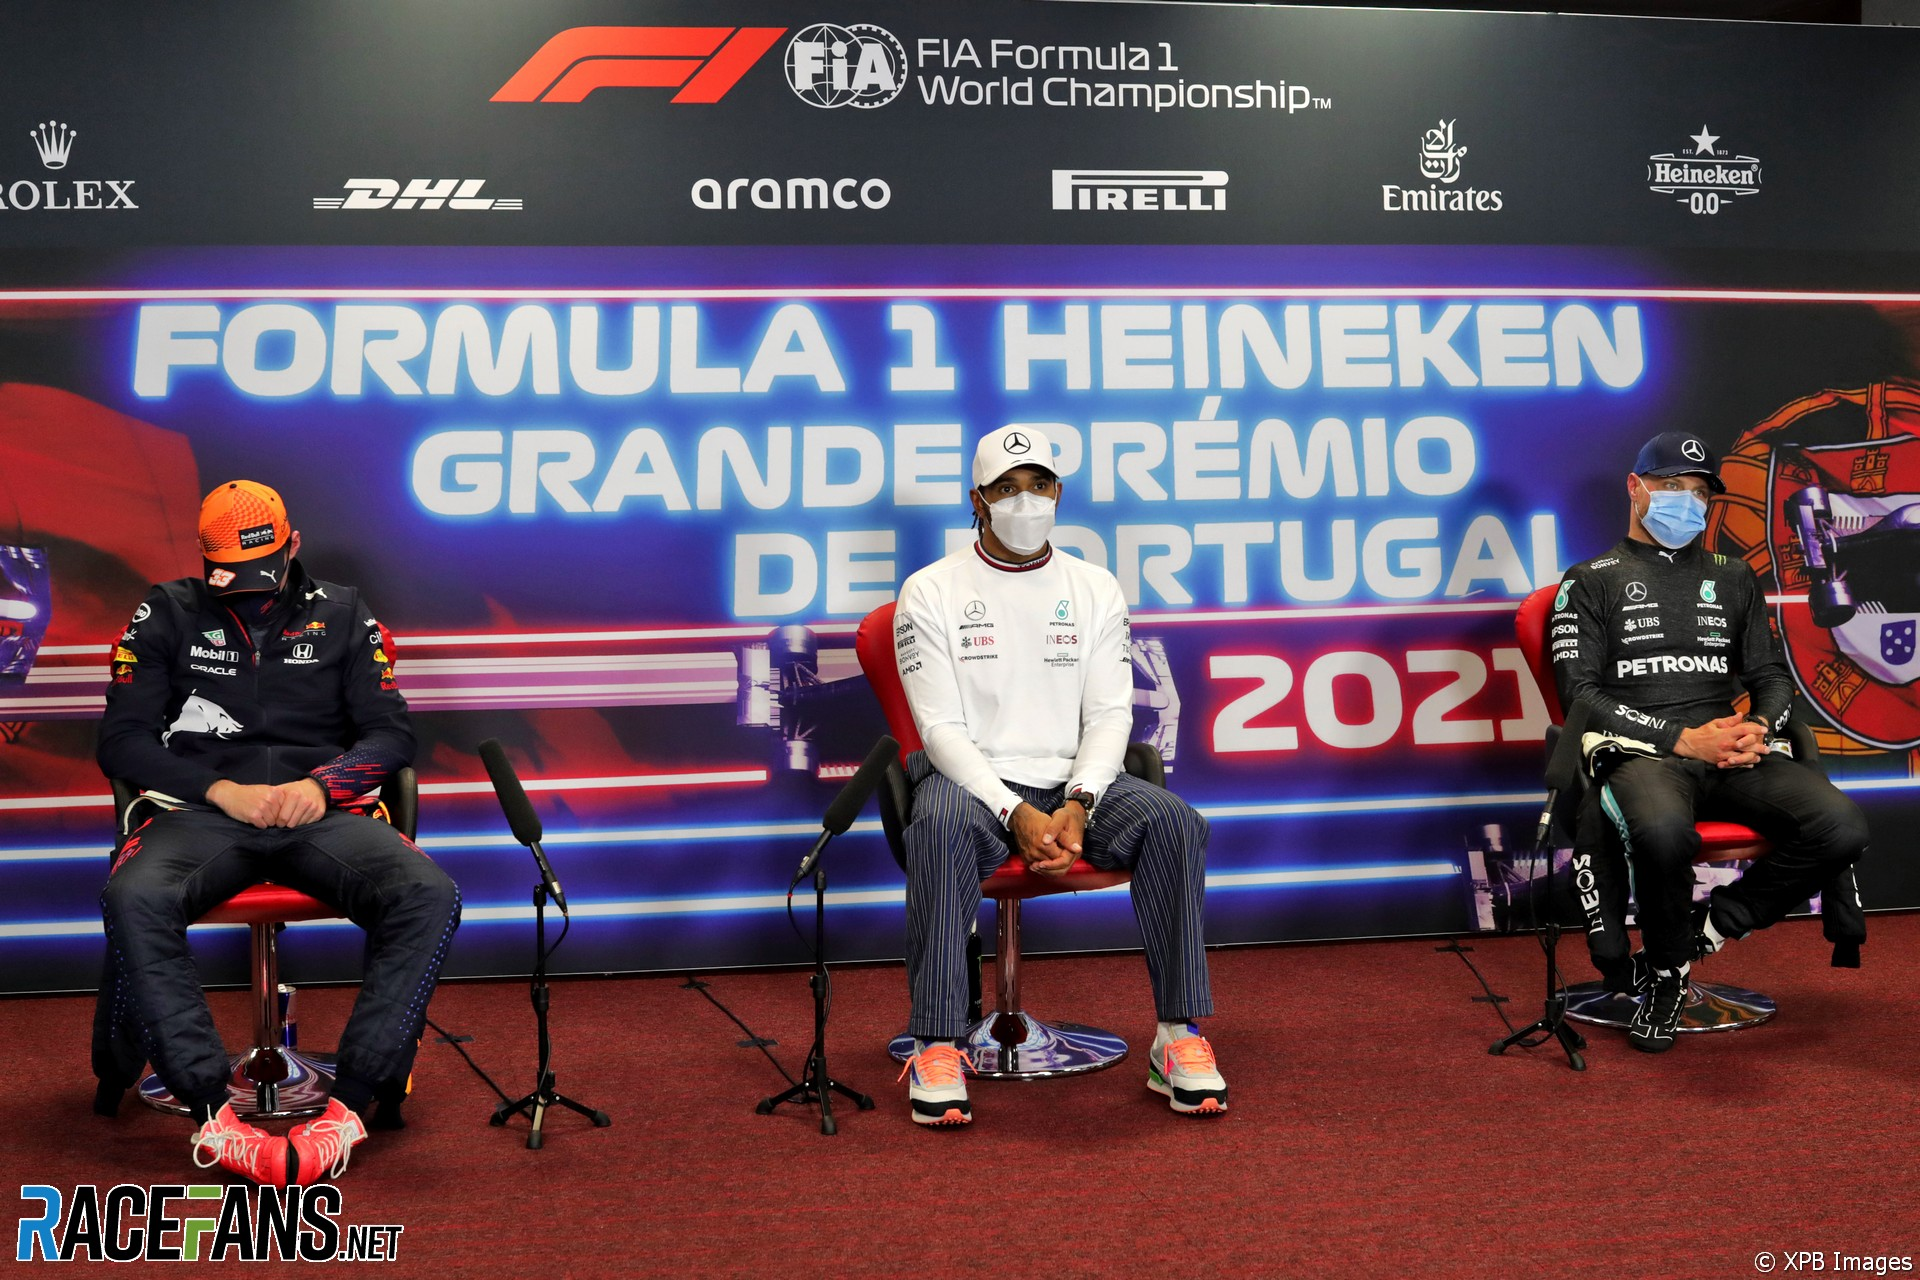 The Top Three : Second Place Max Verstappen (Red Bull Racing), Race Winner Lewis Hamilton (Mercedes AMG F1 Team) and Third Place Valtteri Bottas (Mercedes AMG F1 Team)